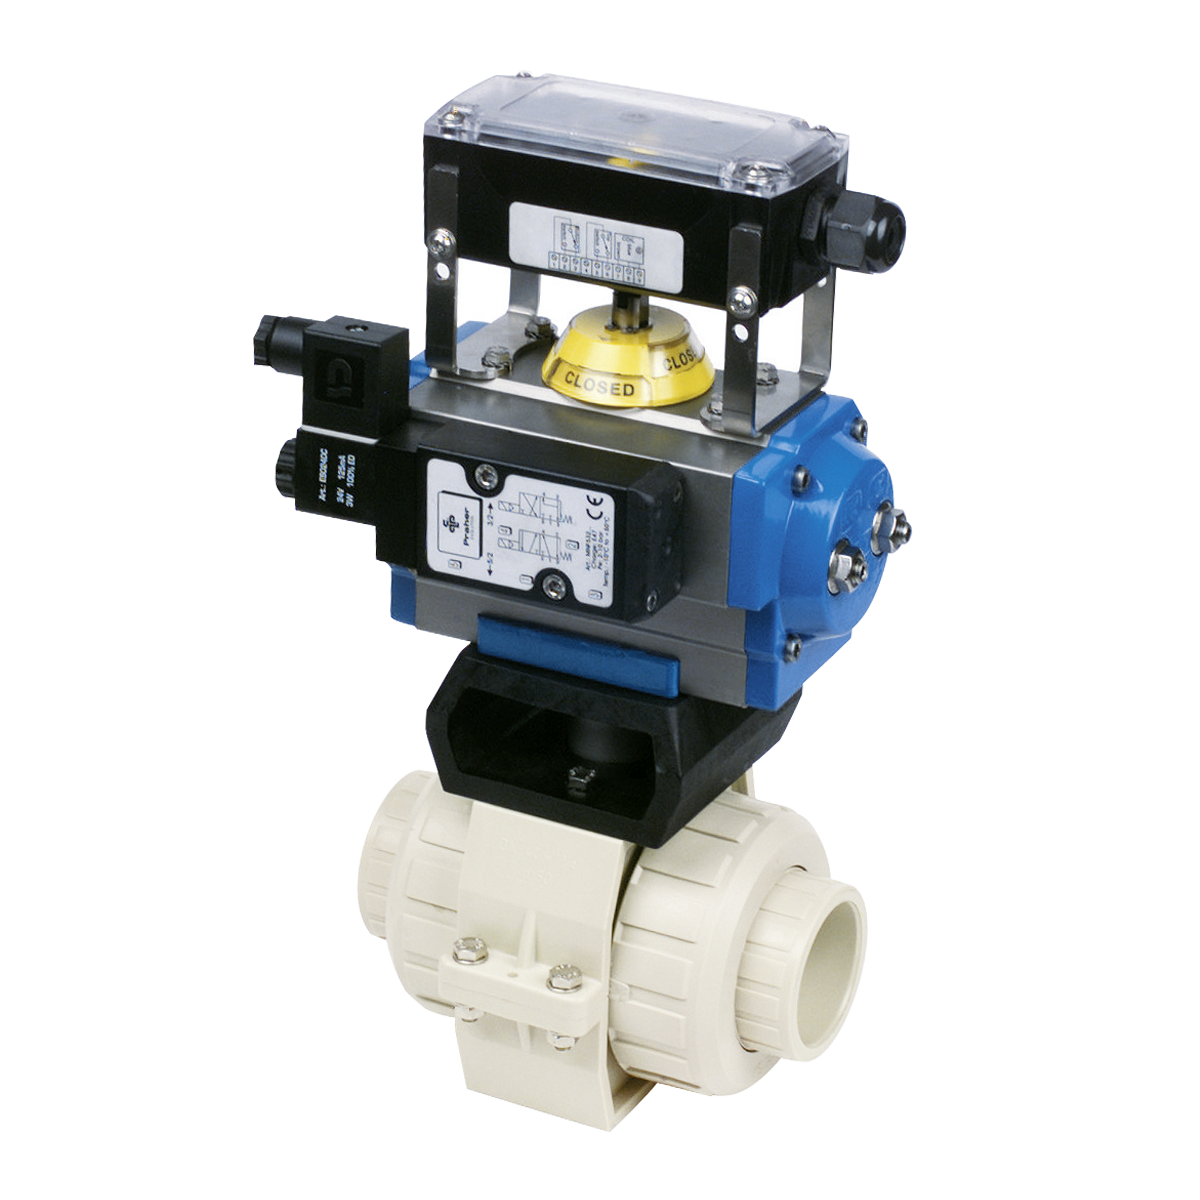 Praher 2-way ball valve S4 PP with pneumatic actuator, beige, balck , grey, blue